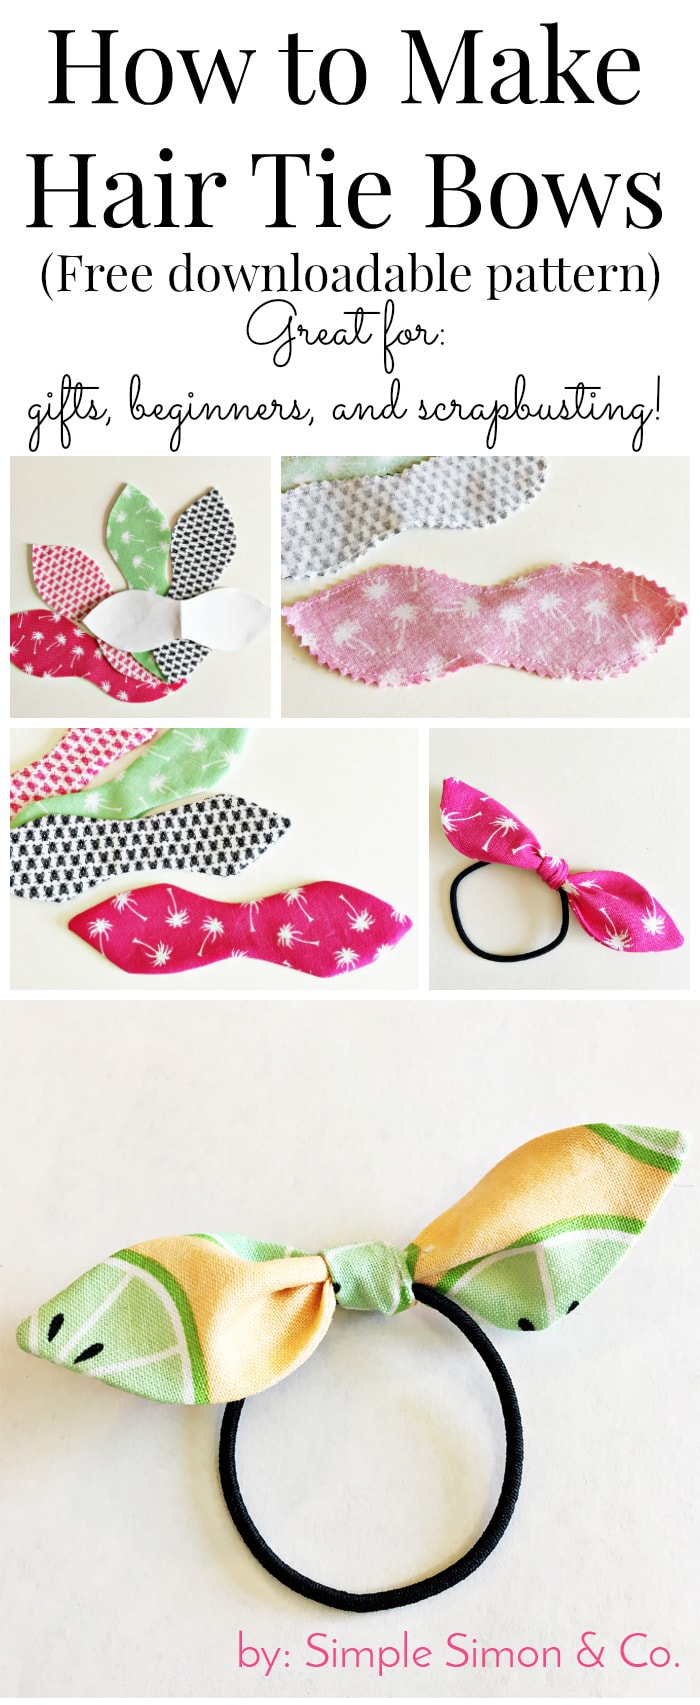 How to Make Knotted Hair Ties - The Polka Dot Chair